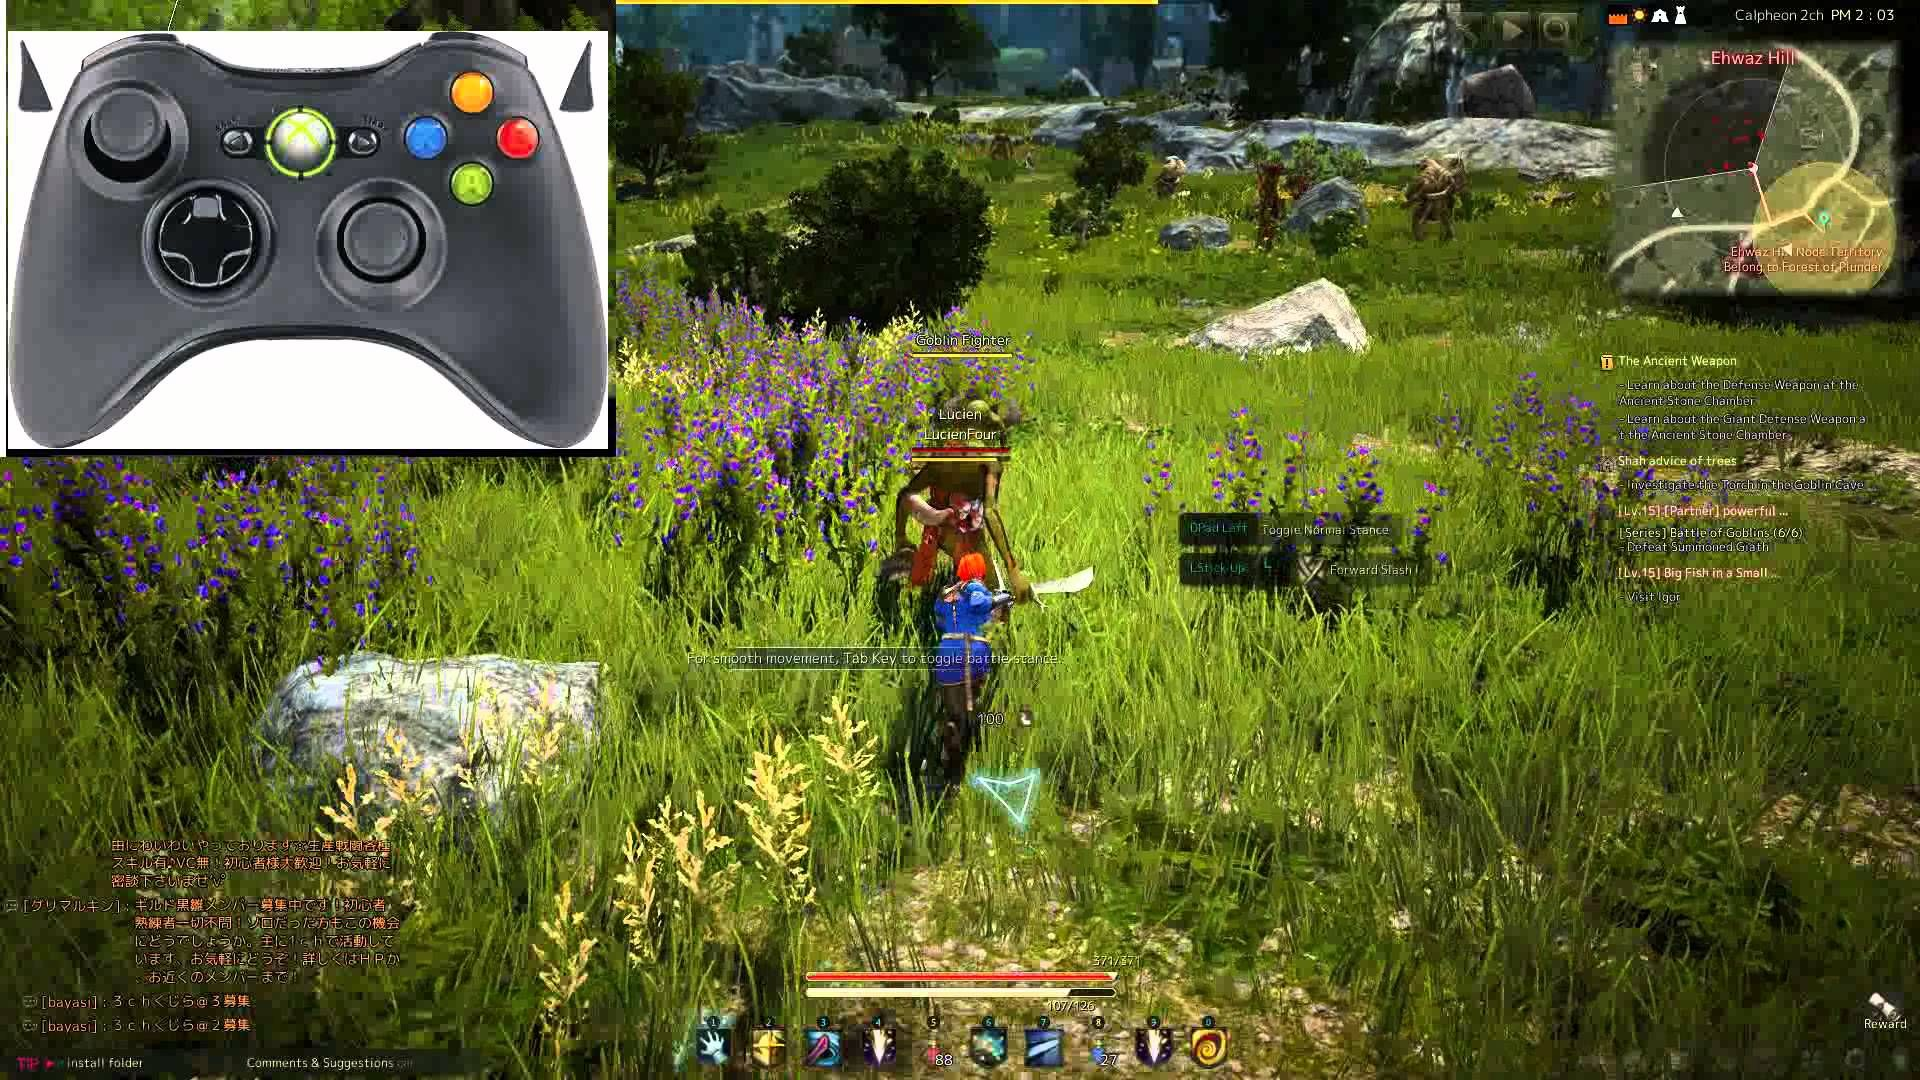 Cool Black Desert Online Xbox 360 Controller Demonstration